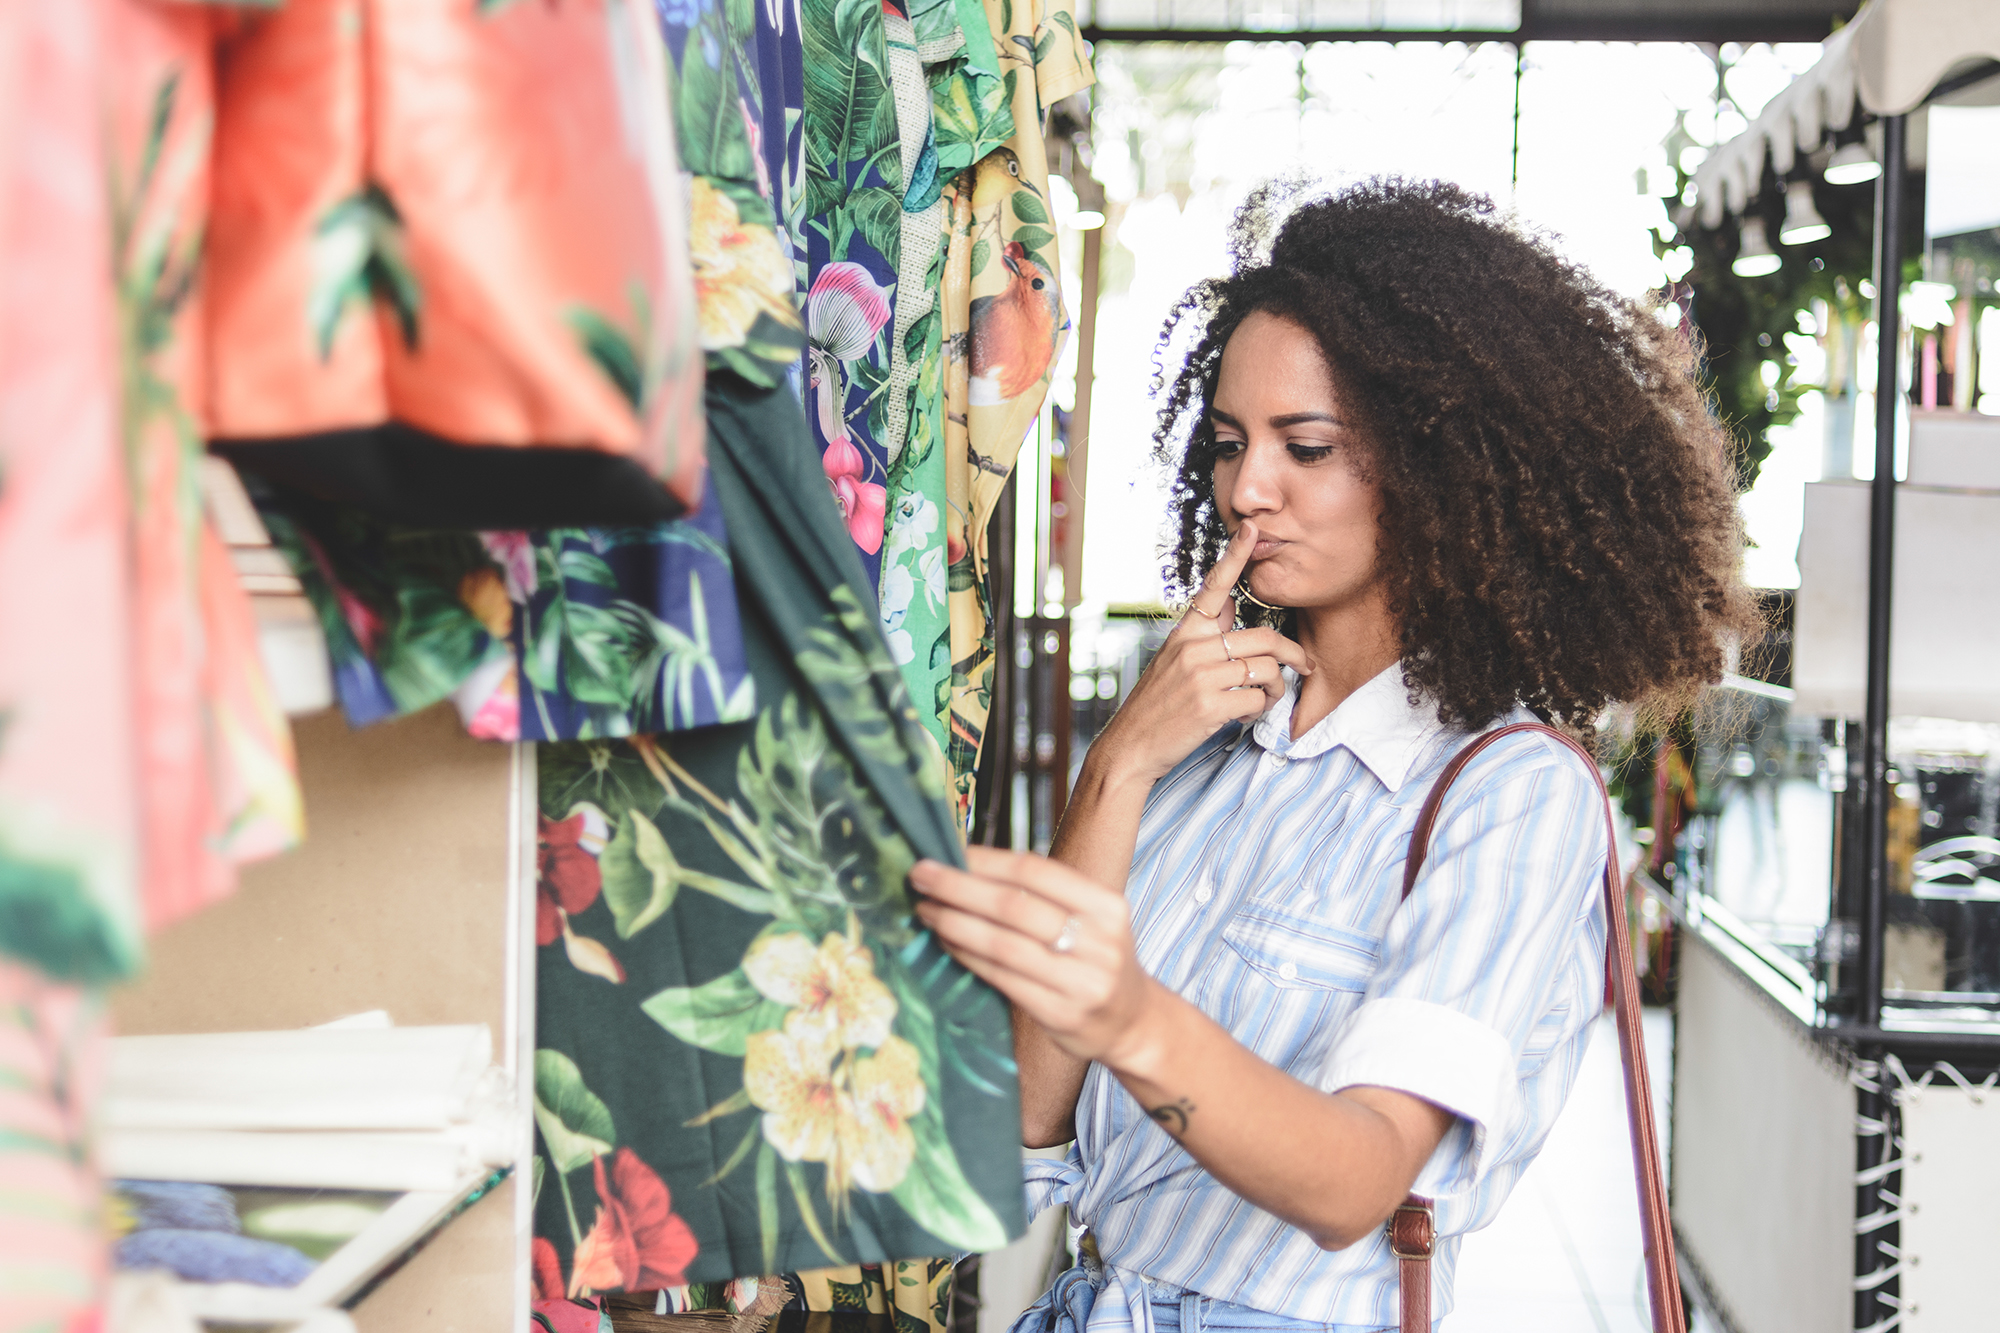 Best sustainable clothing brands 8: 8 ethical fashion lines